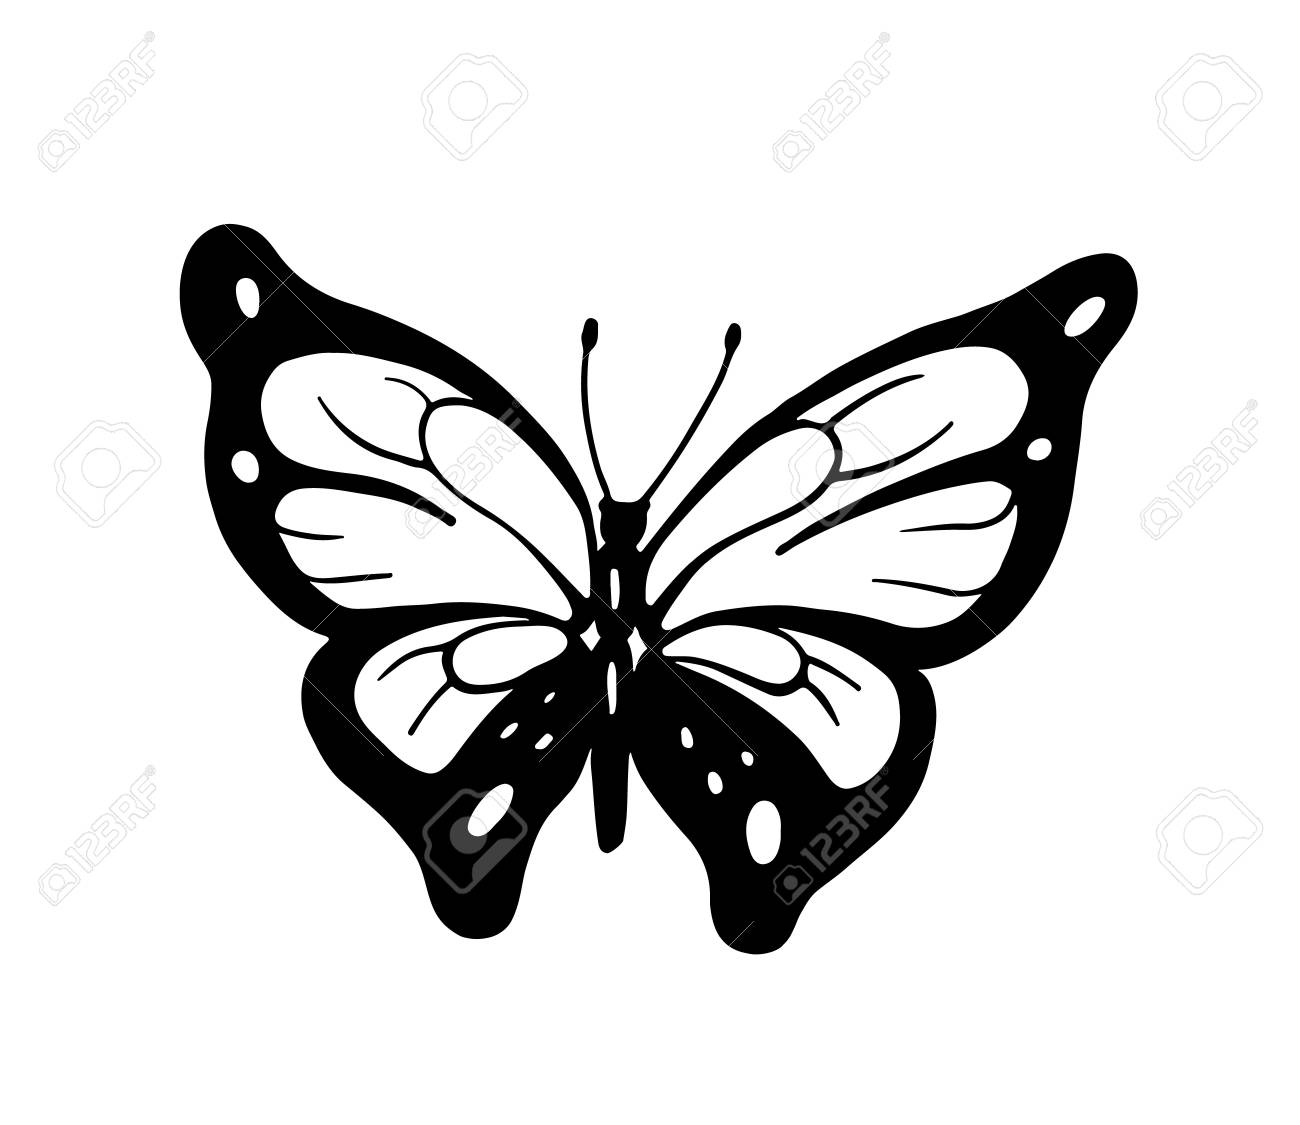 Abstract Decorative Butterfly Hand Drawn Illustration For Greeteng